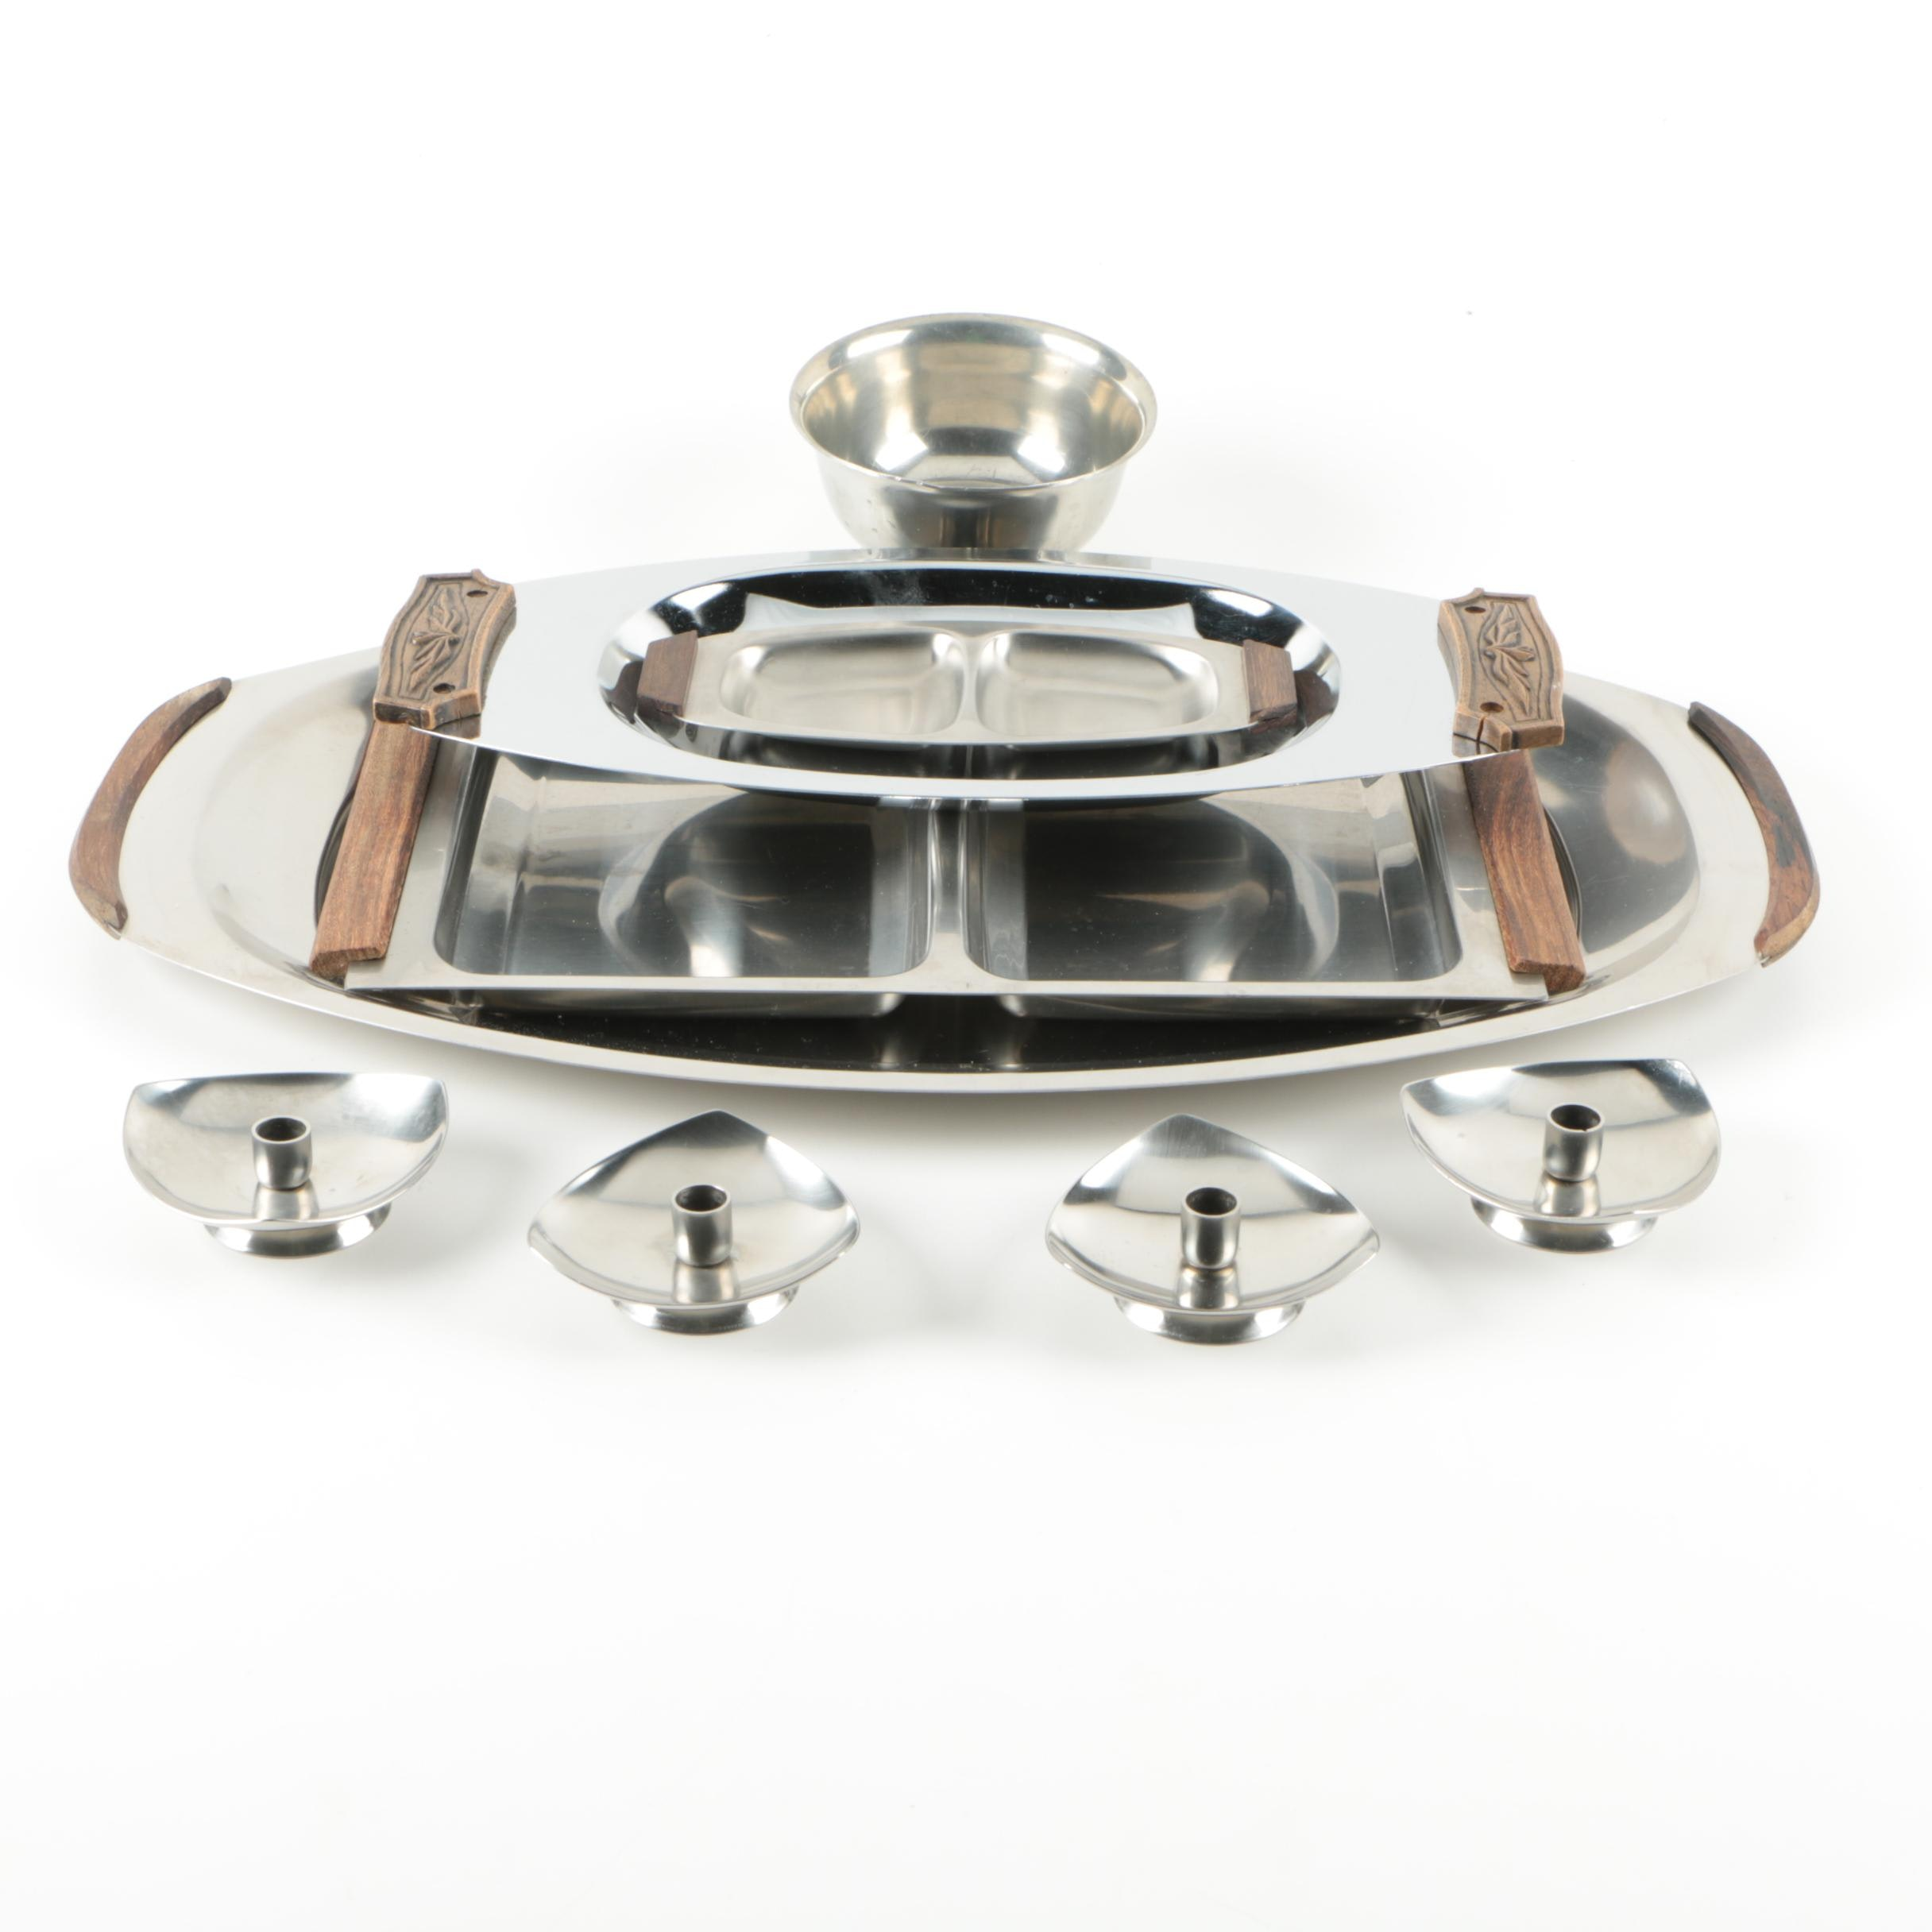 Vintage Danish Modern Pewter and Stainless Steel Décor